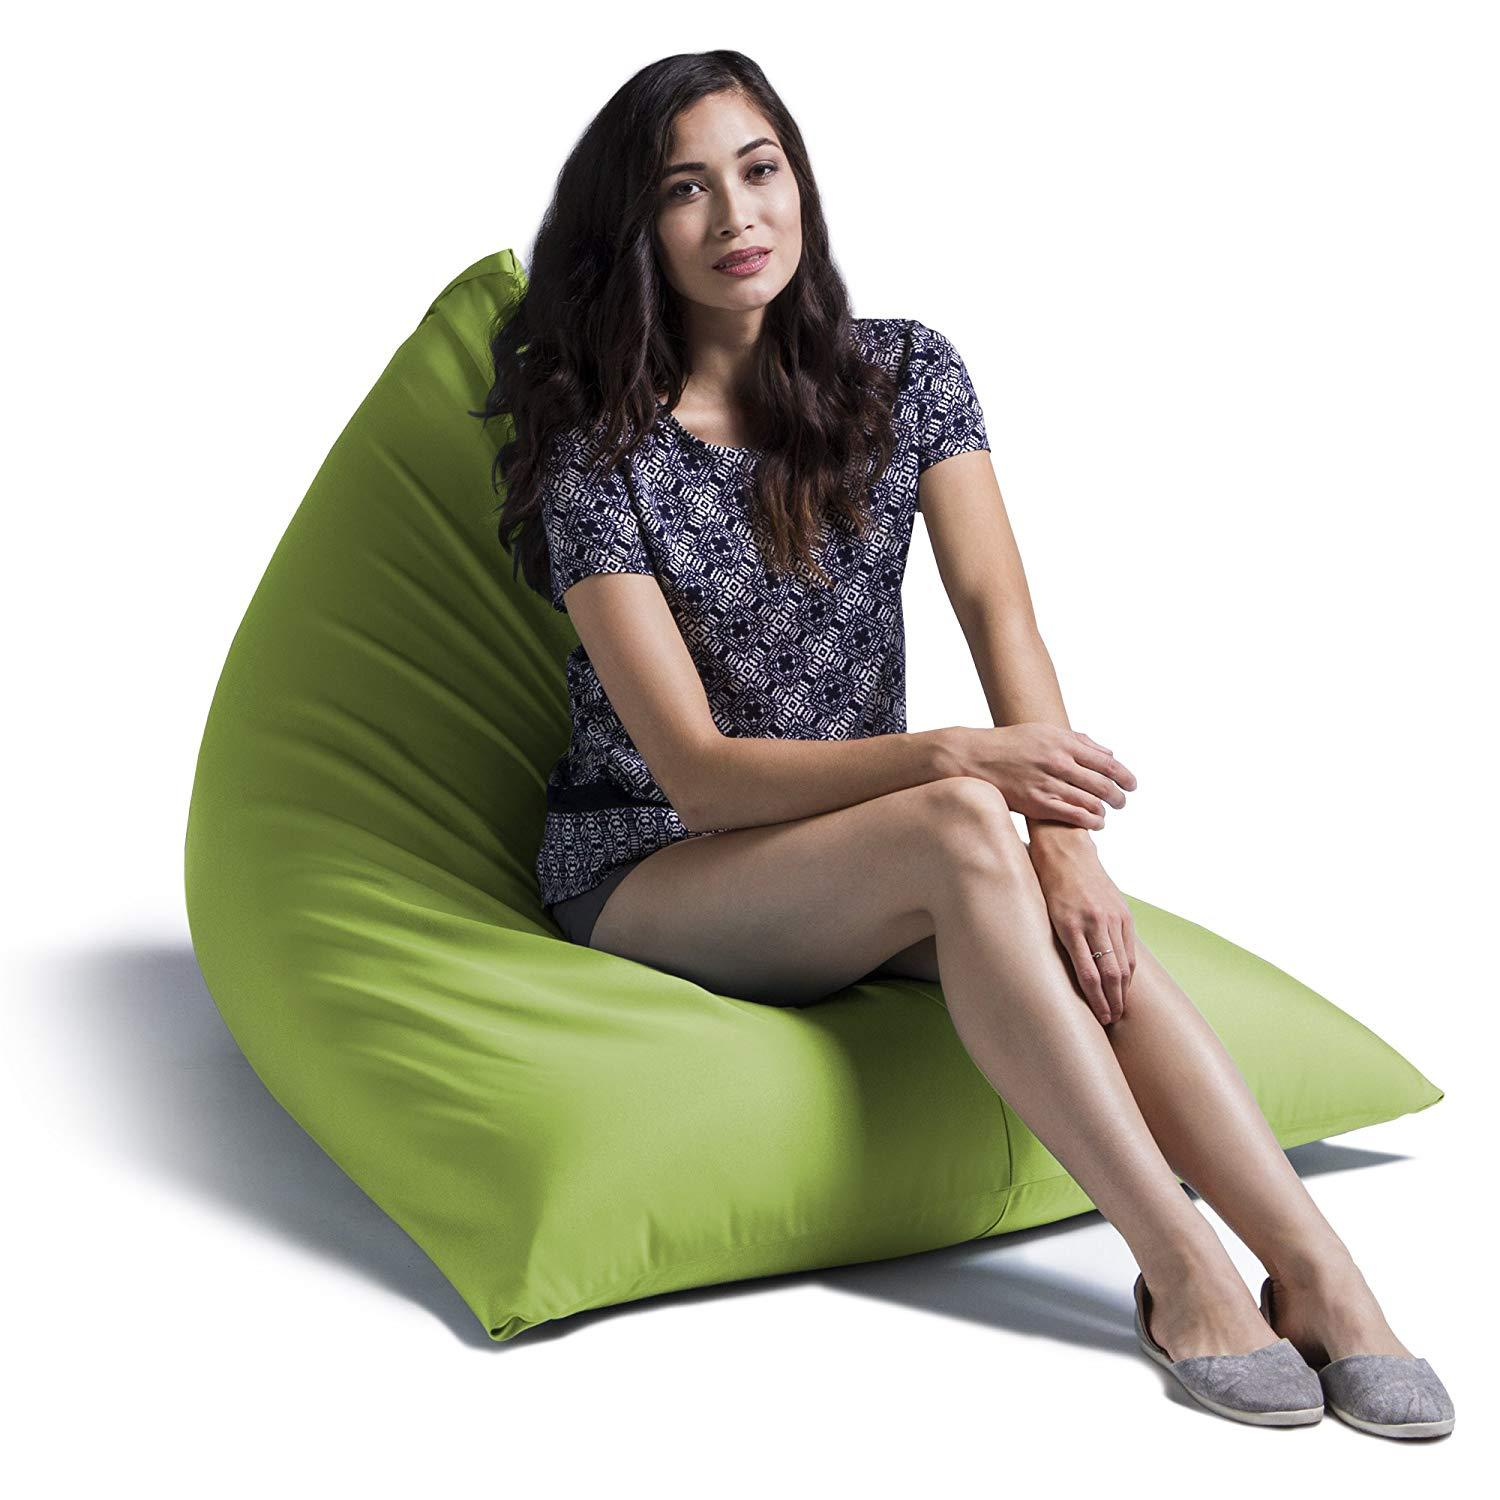 Kursi santai bean bag Triangel Plus isi - Size Dewasa - Paket Hemat Anti air dan